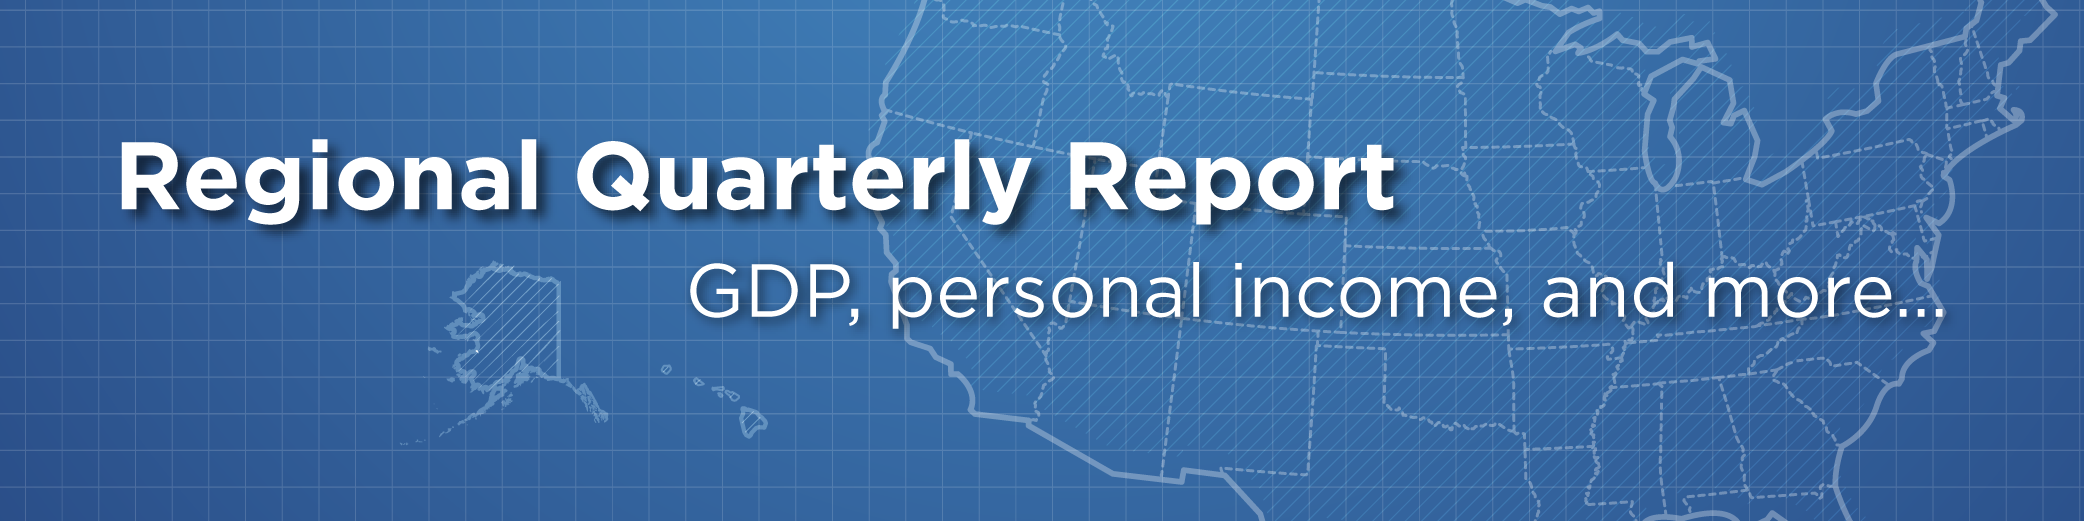 Regional Quarterly Report: GDP, personal income, and more...